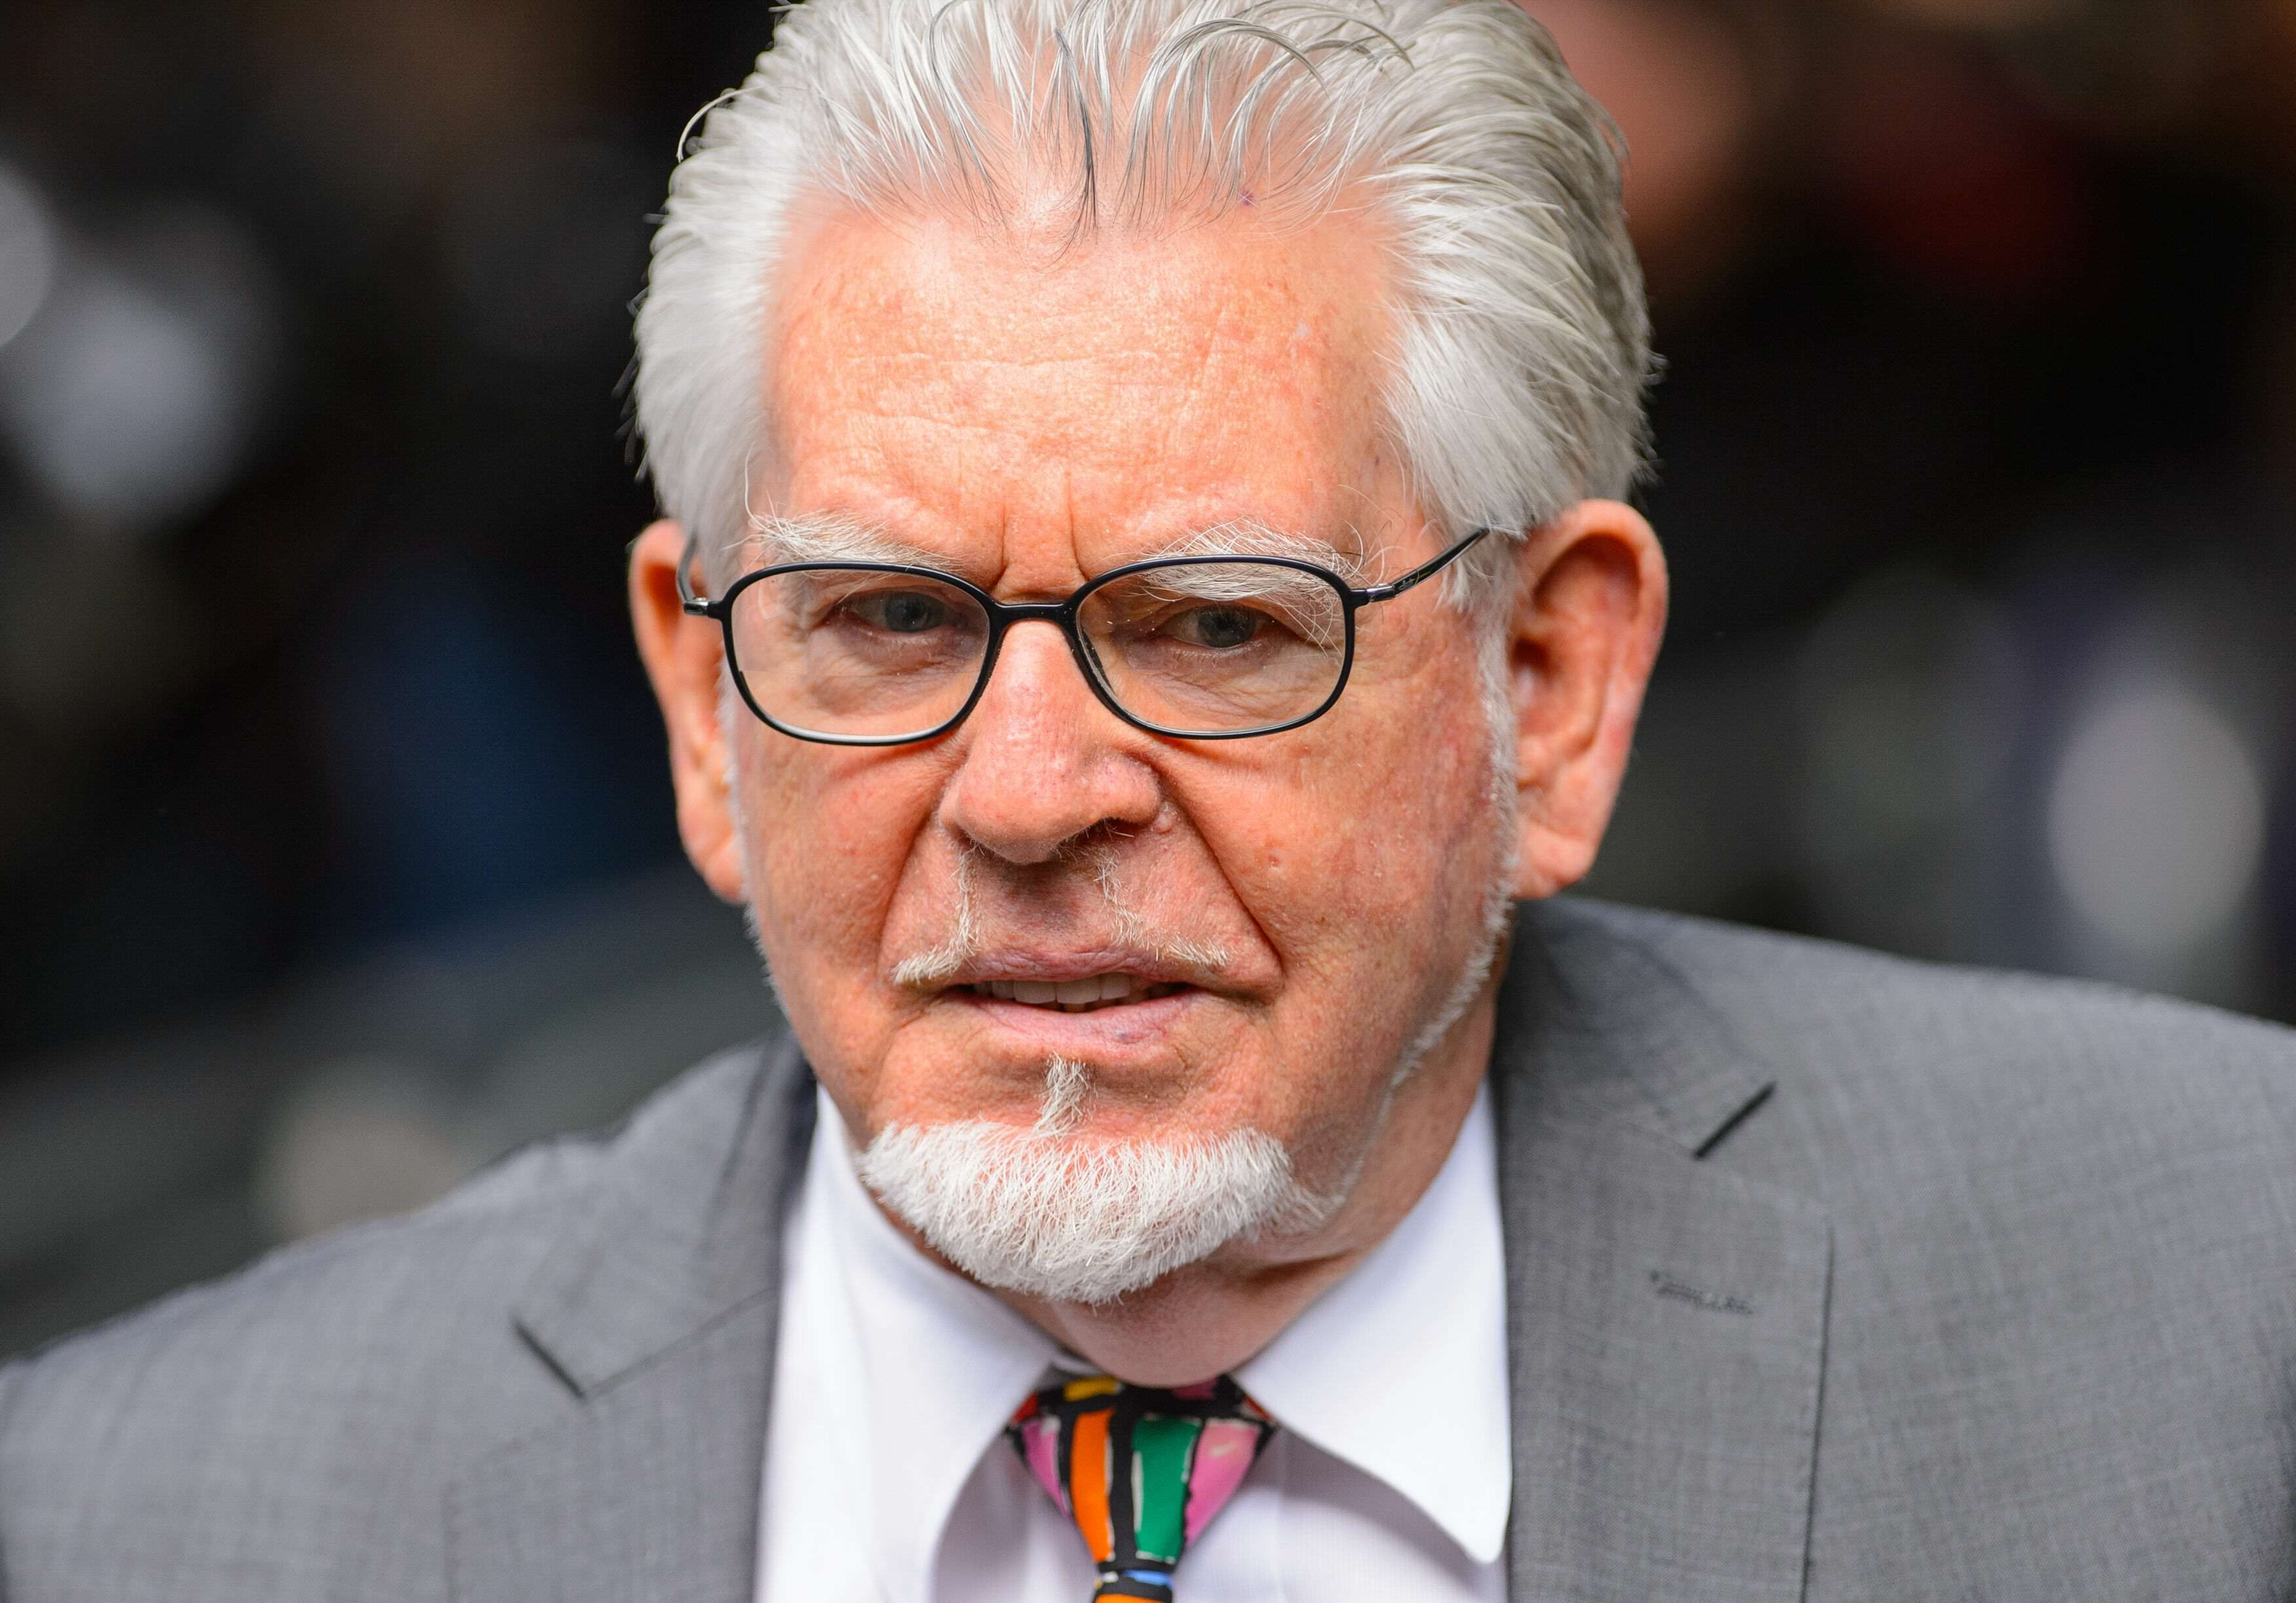 rolfharris1 Rolf Harris Has Been Using Prison Toilet Rolls For Unusual Therapy